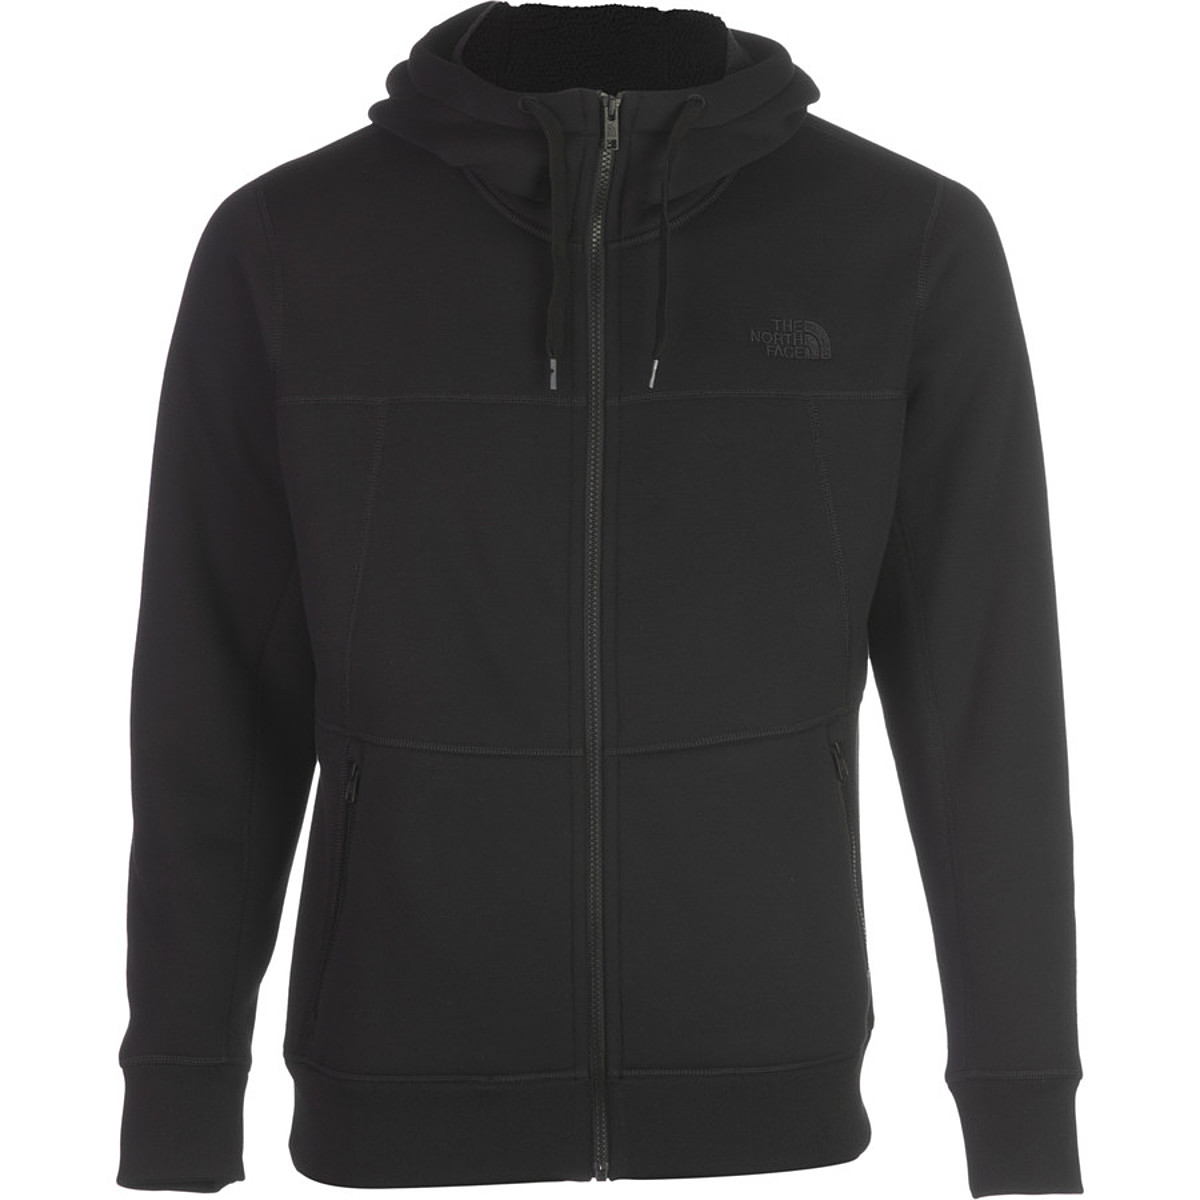 The North Face Ventron Full Zip Hoodie